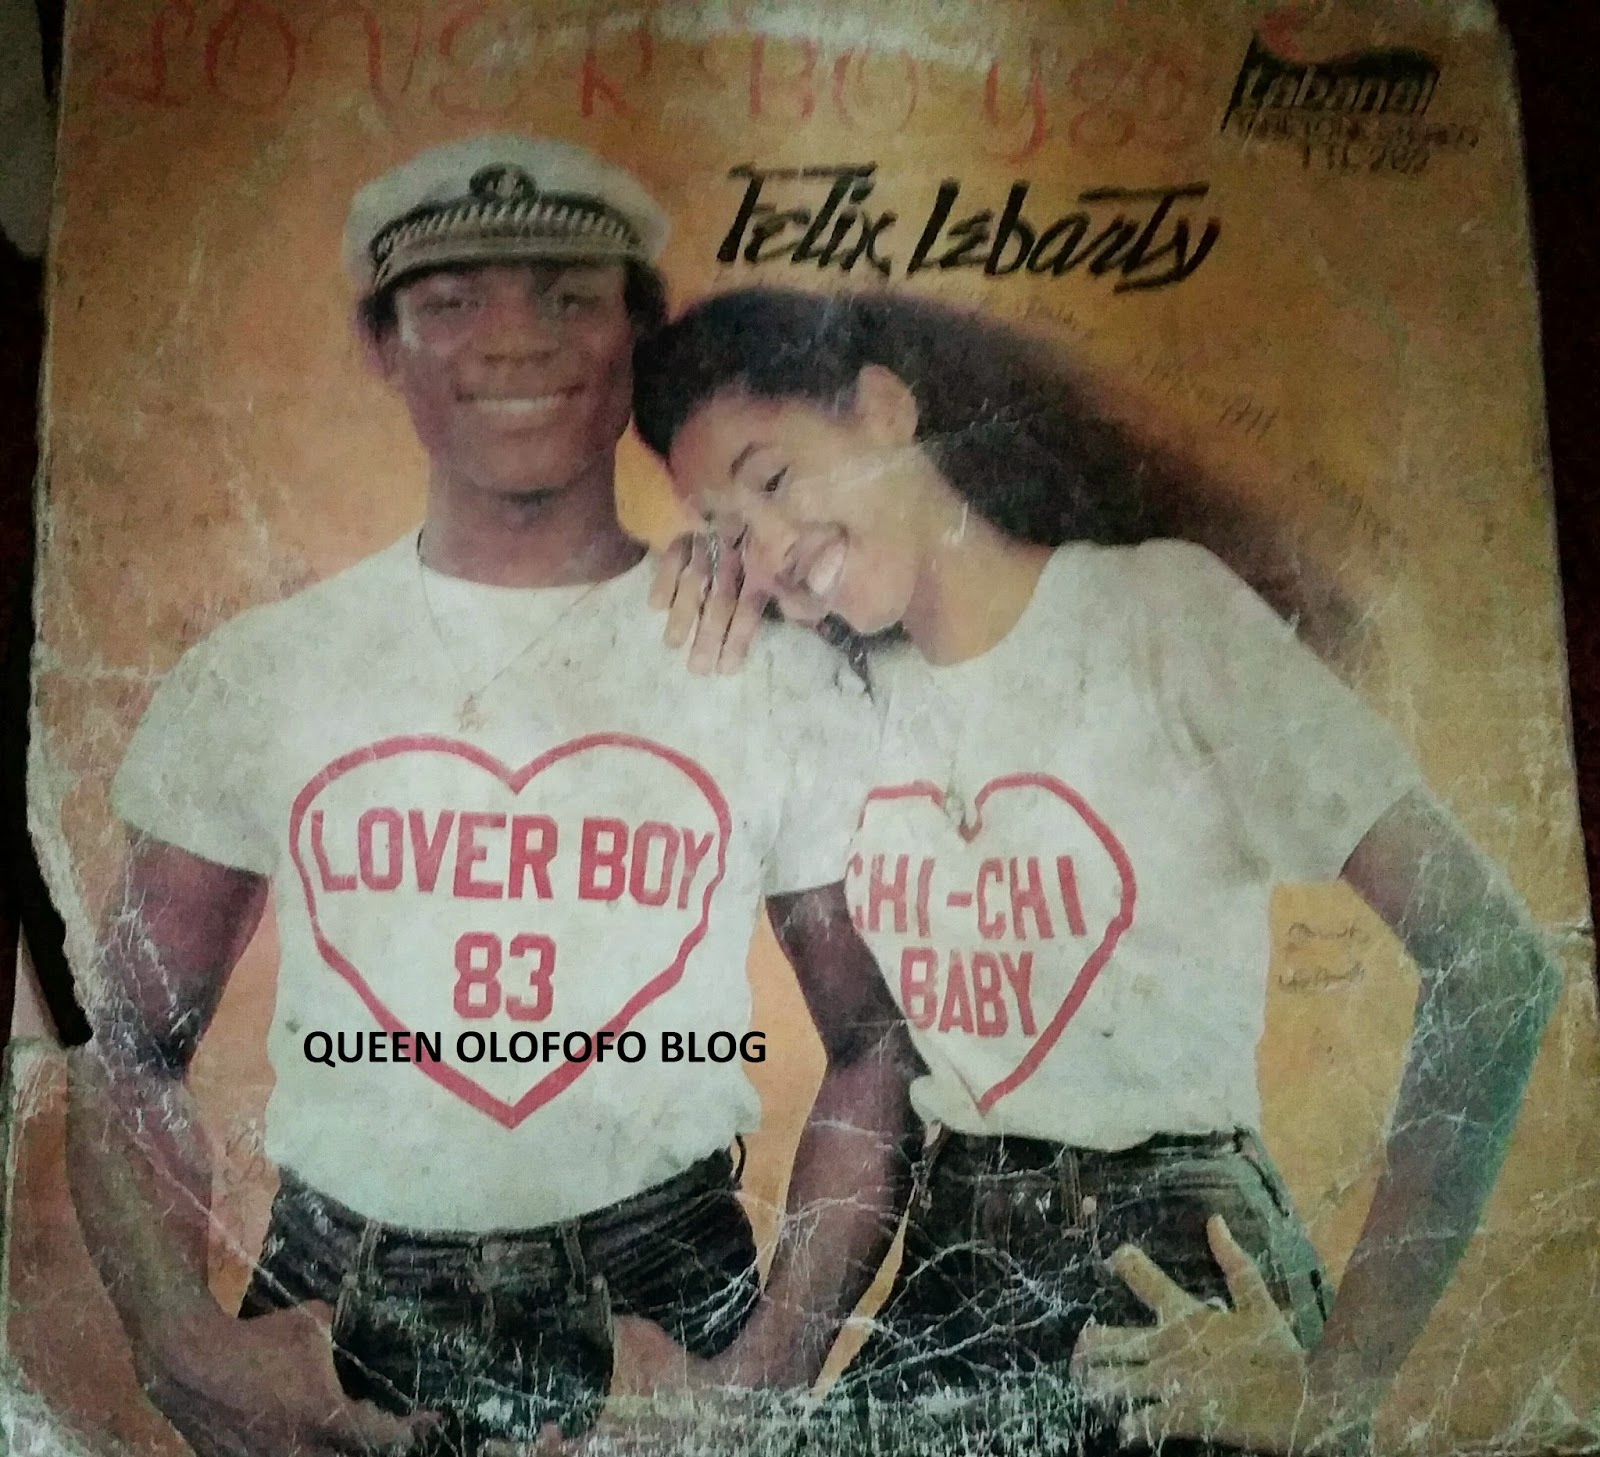 felix lebarty was the loverboy